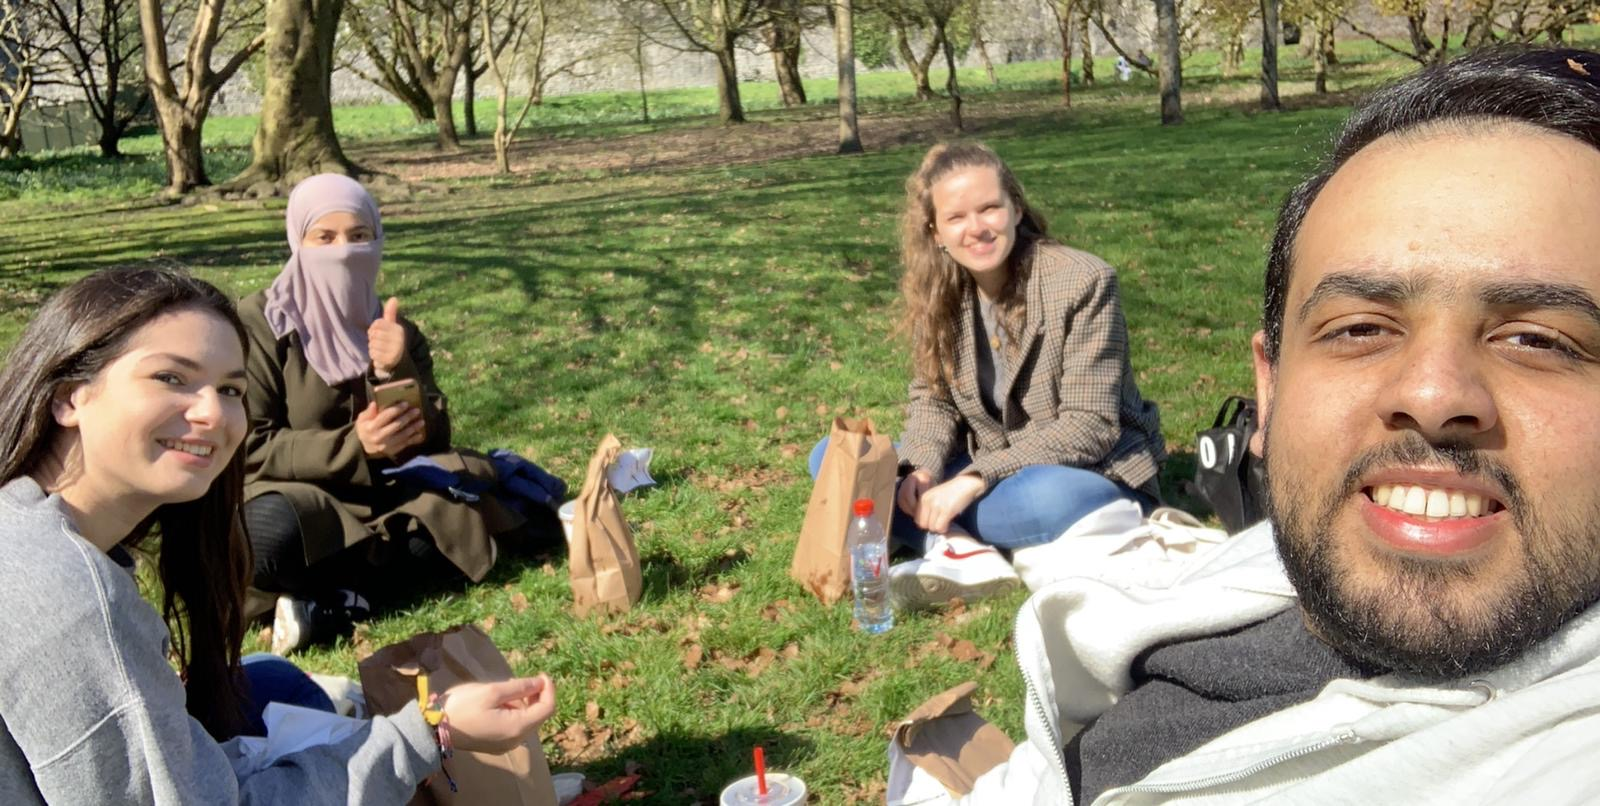 Laura and her friends in Bute Park